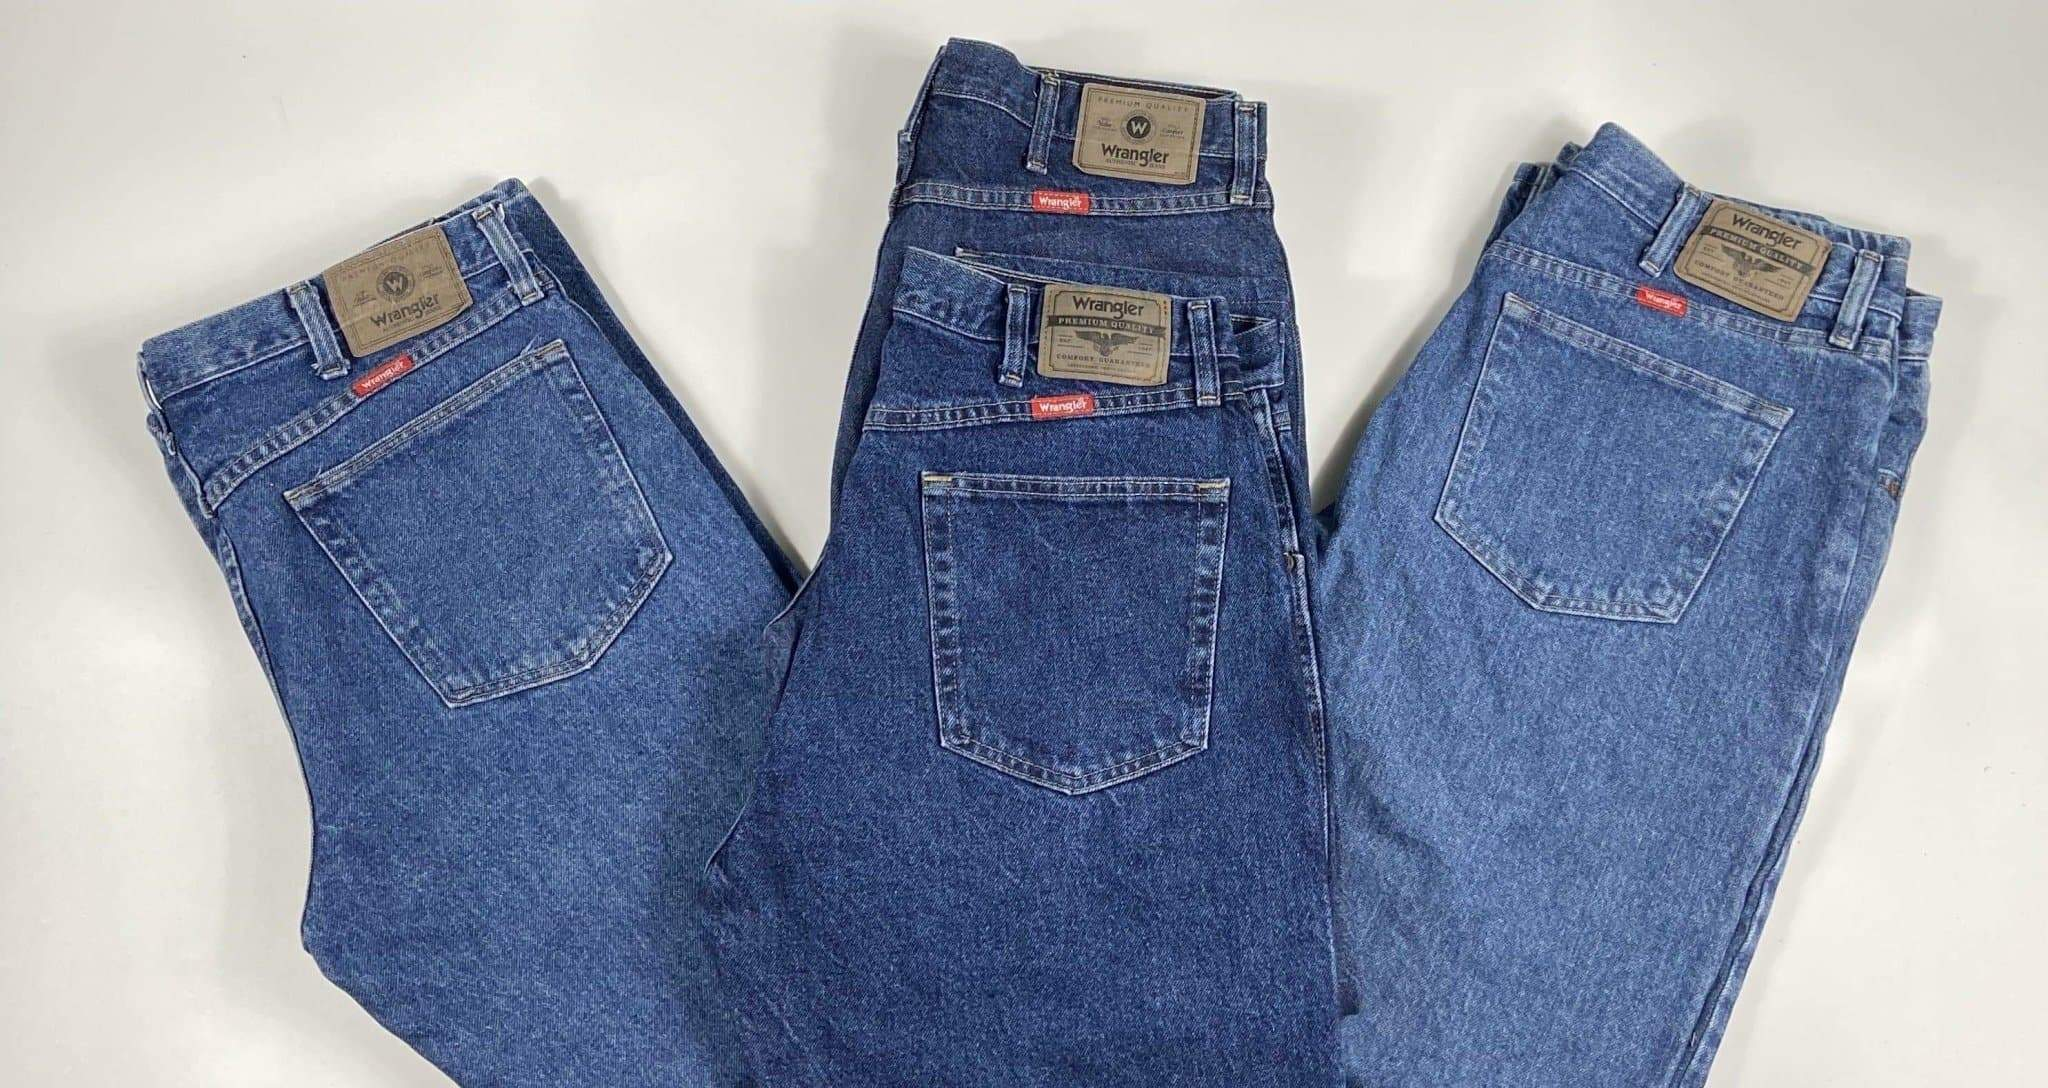 Vintage Original Wrangler Classic Blue Denim Jeans Waist 36 Length 28 - Discounted Deals UK